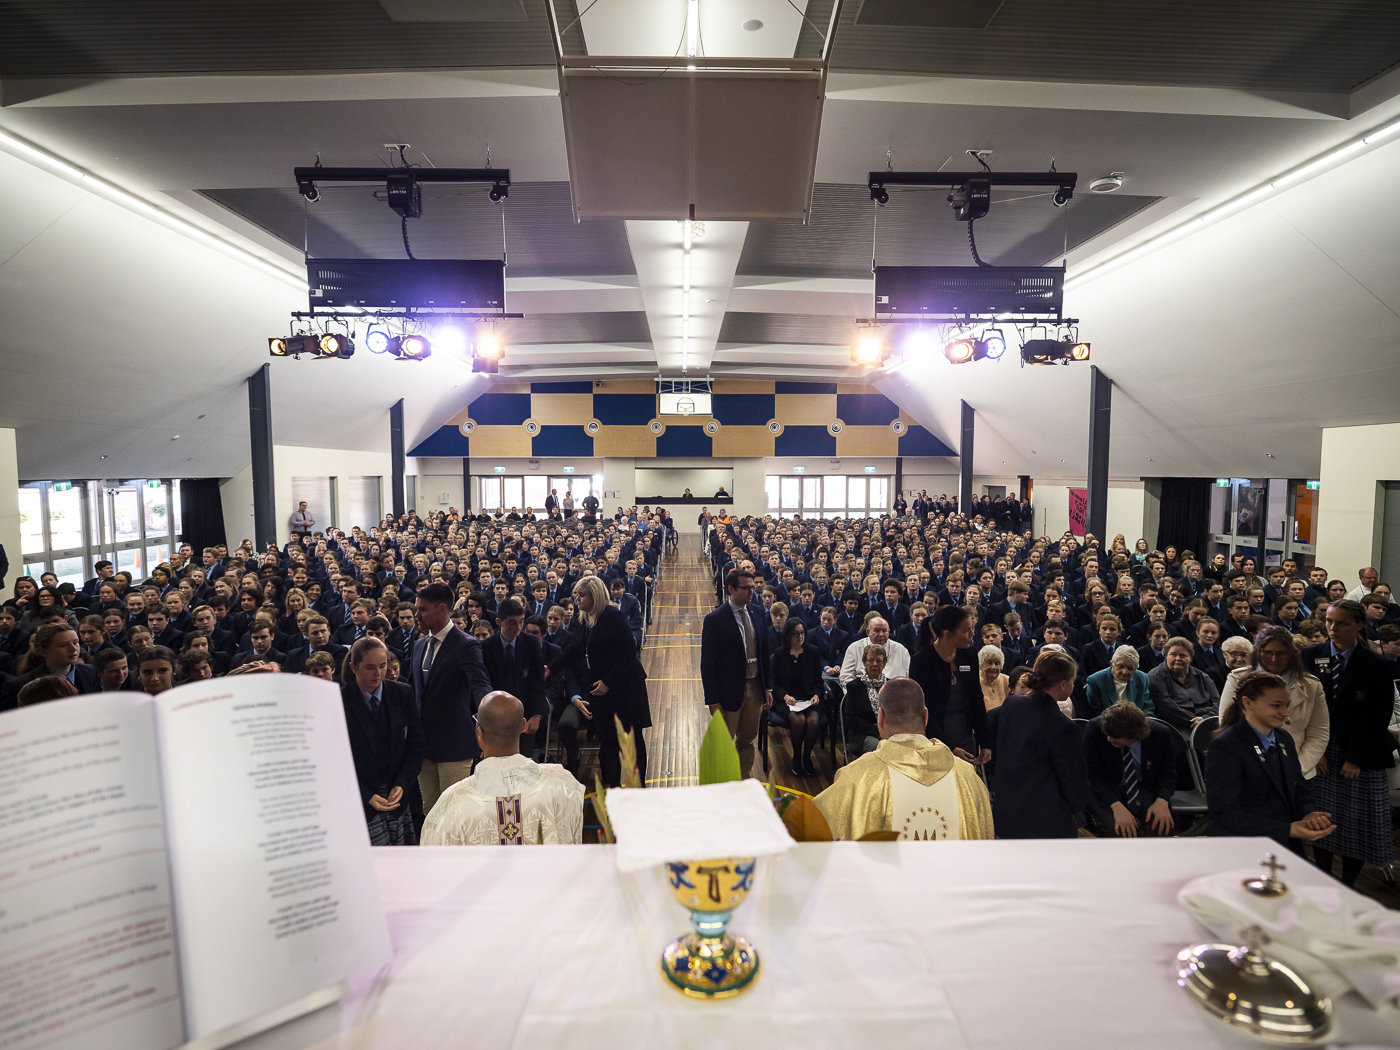 Assumption Mass